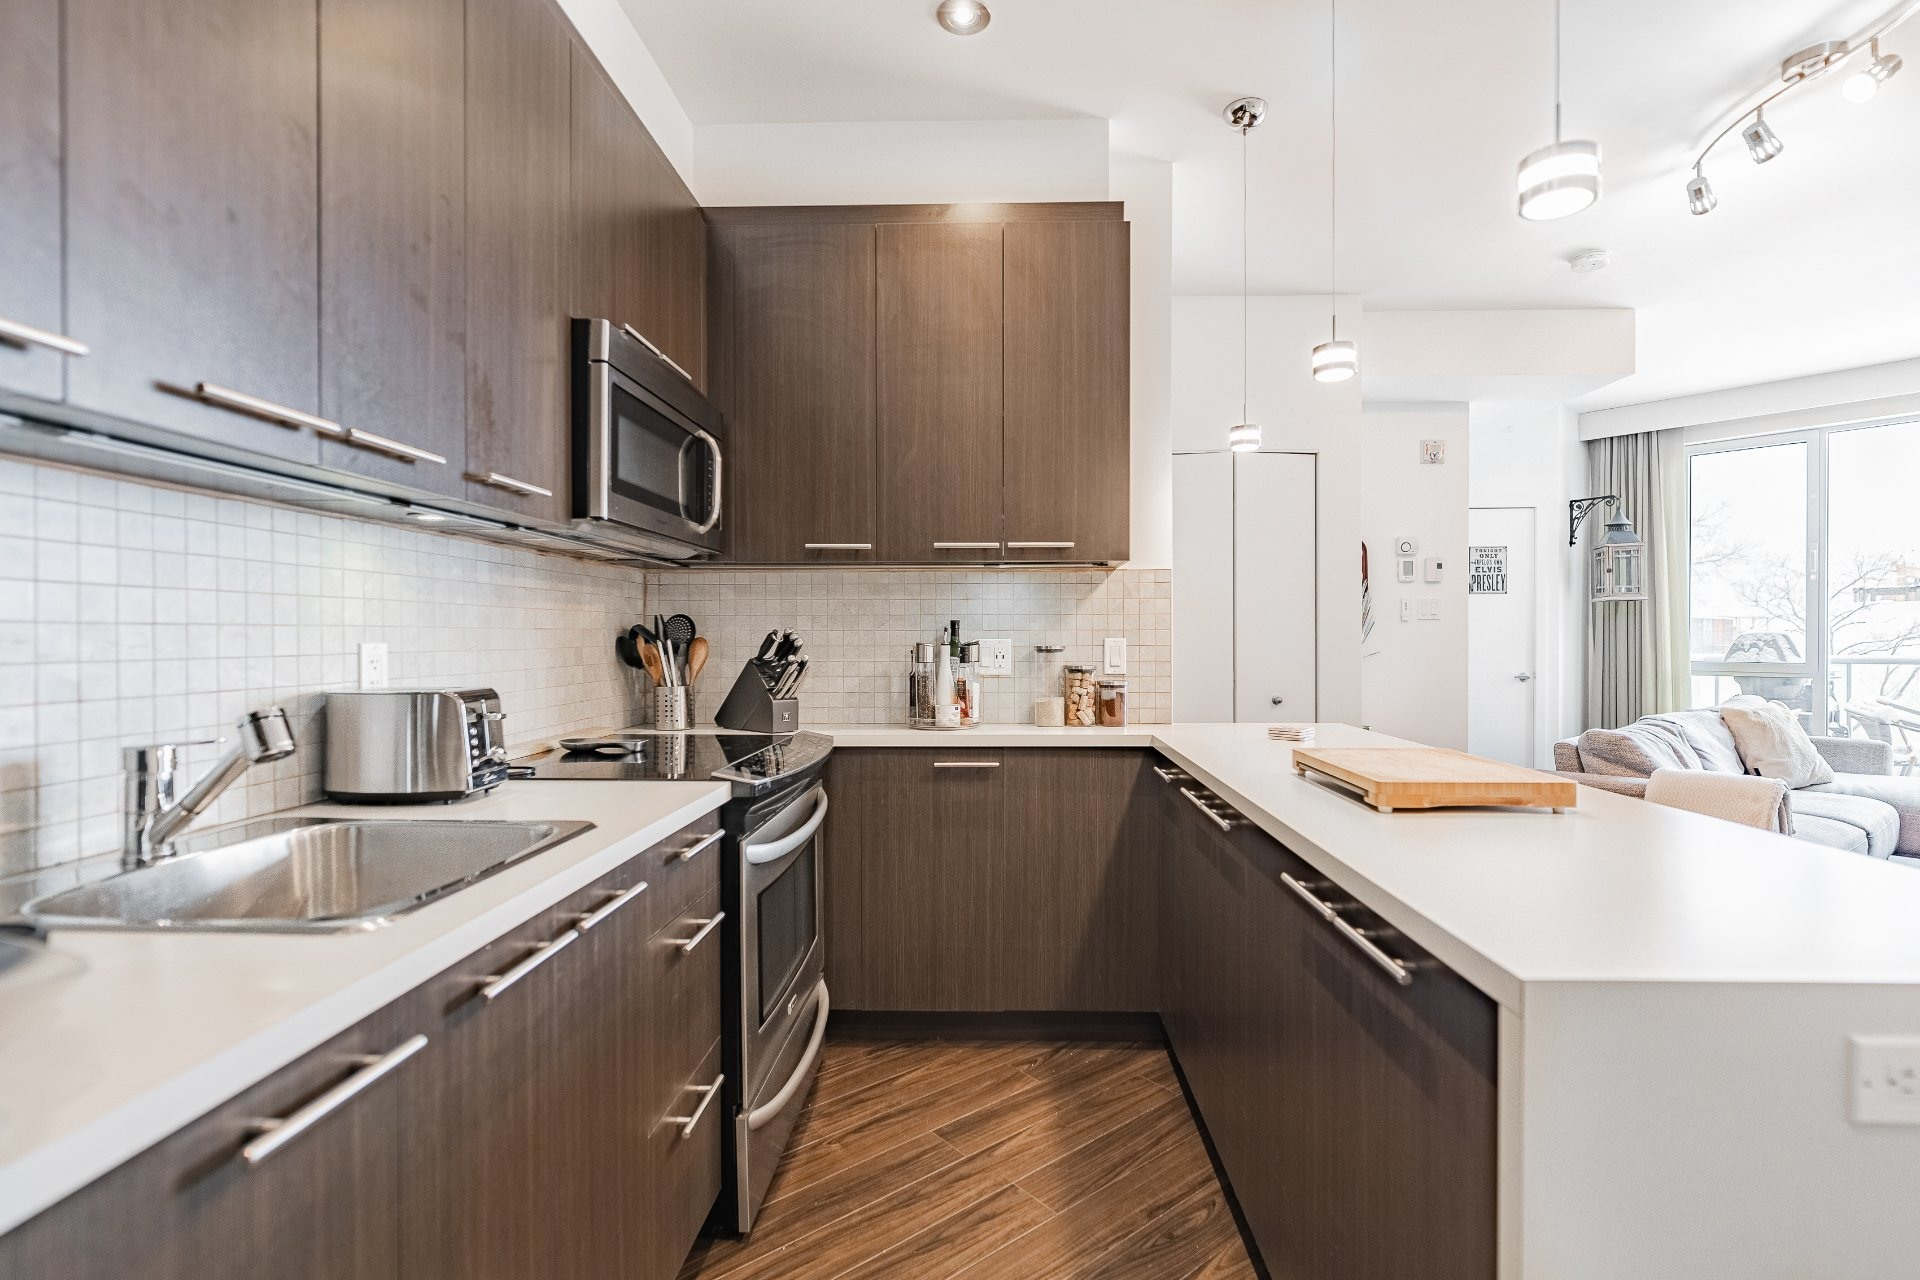 image 4 - Apartment For sale Mercier/Hochelaga-Maisonneuve Montréal  - 5 rooms